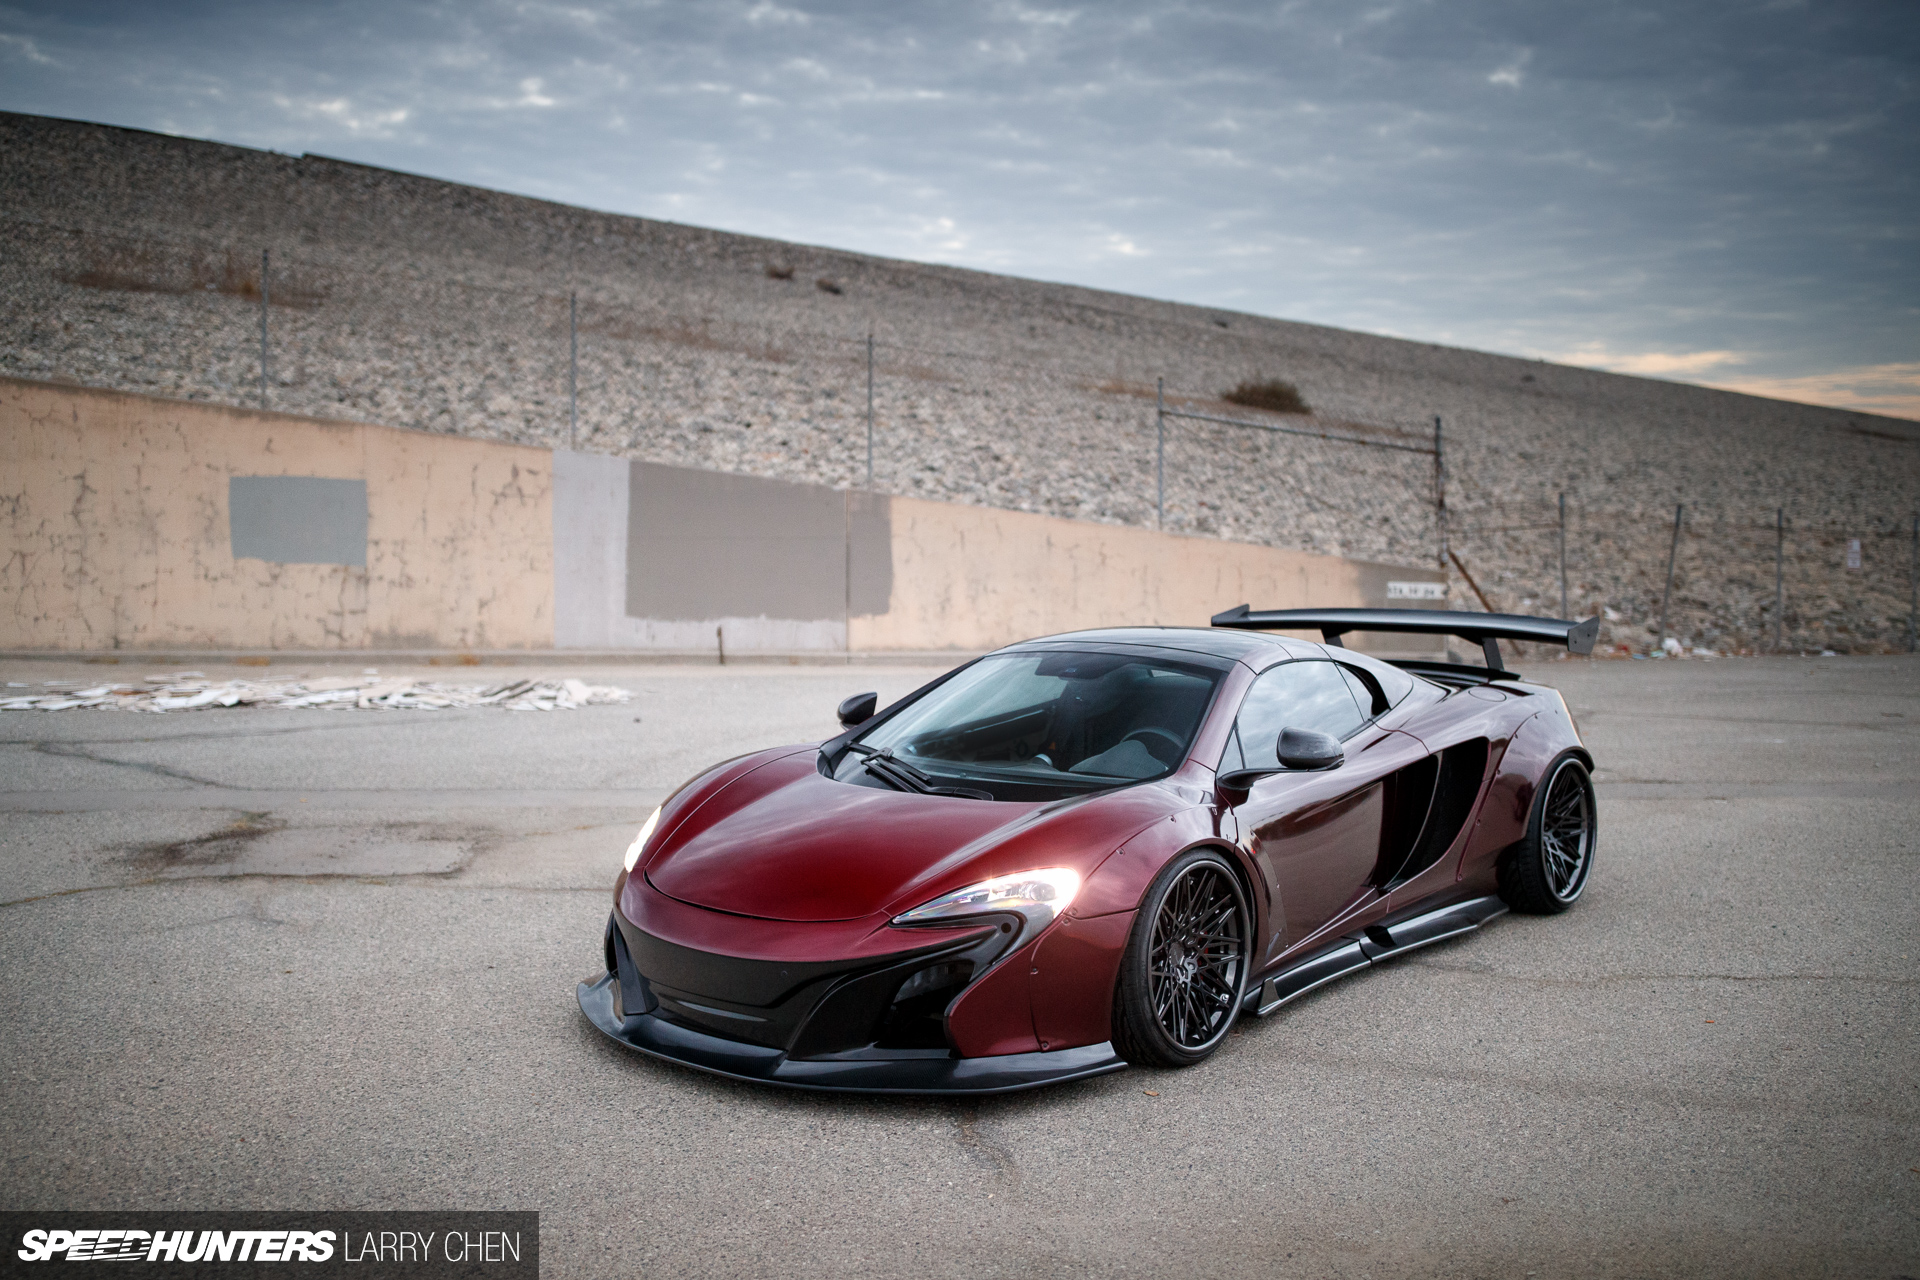 Larry_Chen_Speedhunters_liberty_walk_mclaren_Mp412c-14 LB-WORKS Mclaren 650S / MP4-12c